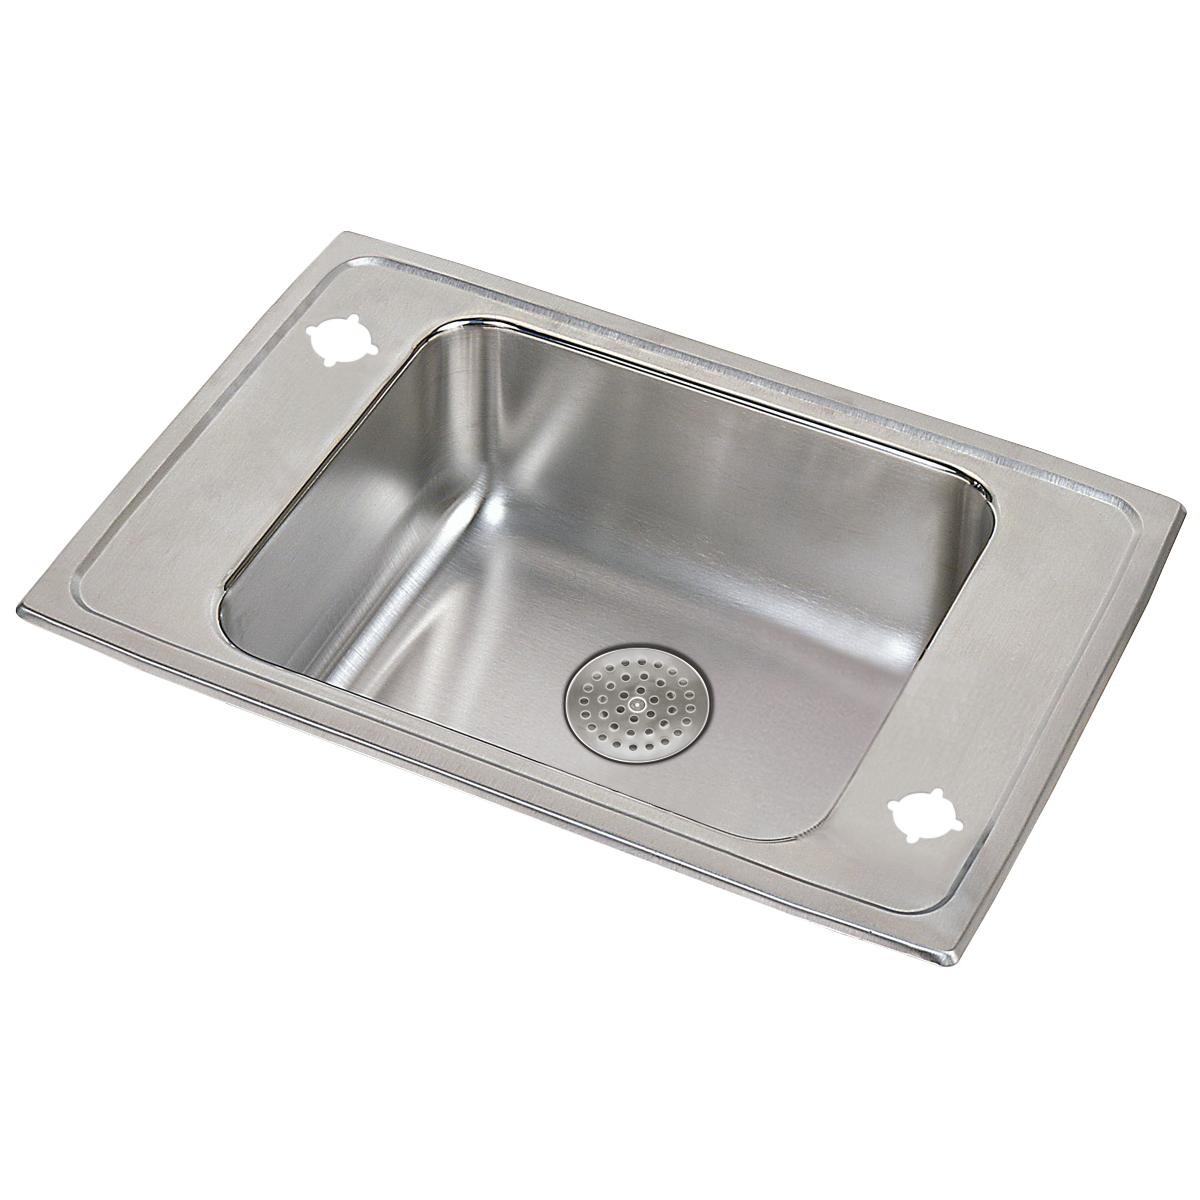 "Elkay Lustertone Classic Stainless Steel 31""x19-1/2""x5-1/2"", Single Bowl Drop-in Classroom ADA Sink w/ Perfect Drain Grid"